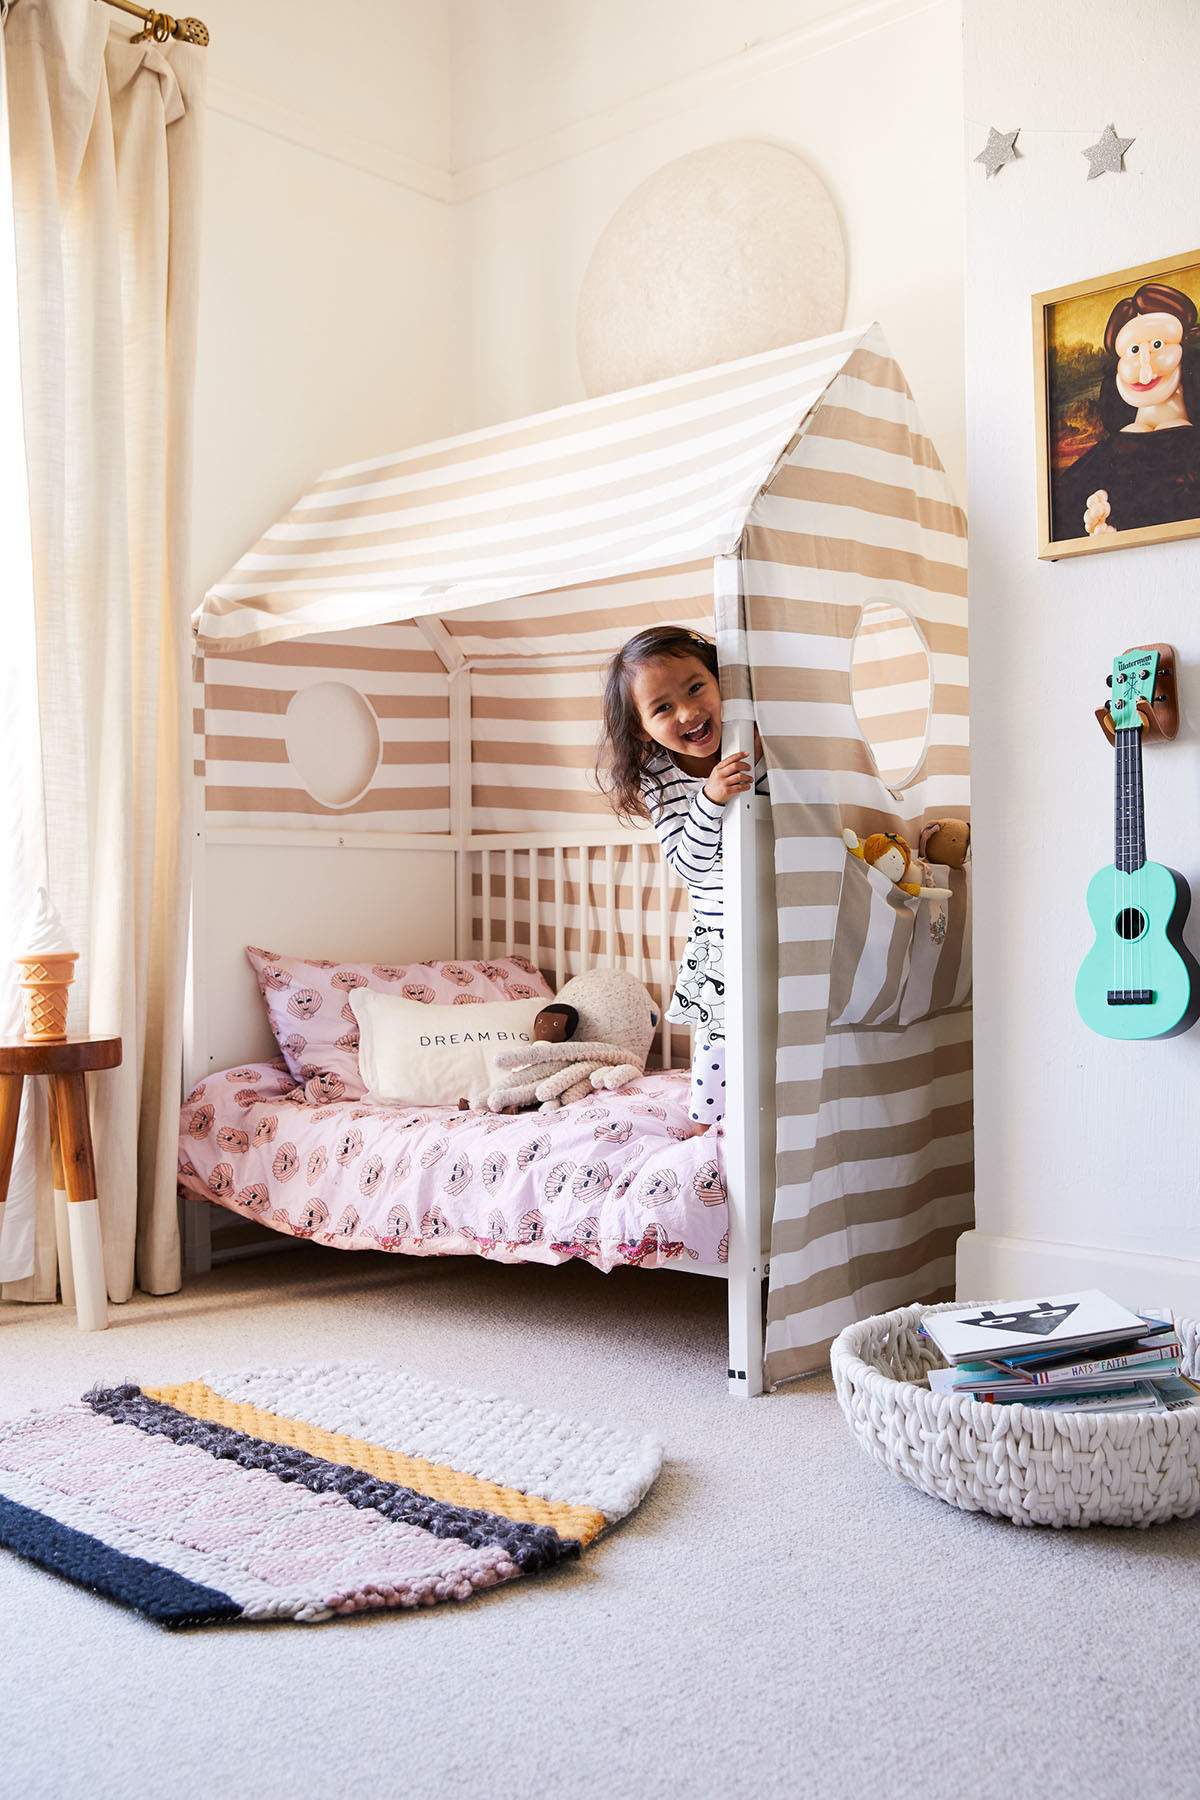 Tallie's playful bedroom is a dreamy, neutral retreat. Serena & Lily Stool | Barn & Willow Custom Drapes | Stokke Bed | Hugo Loves Tiki x Kip & Co Bedding | HillHouse Home Pillow | Justina Blakeney x Pottery Barn Kids Collection Moon | Larry Moss Art.